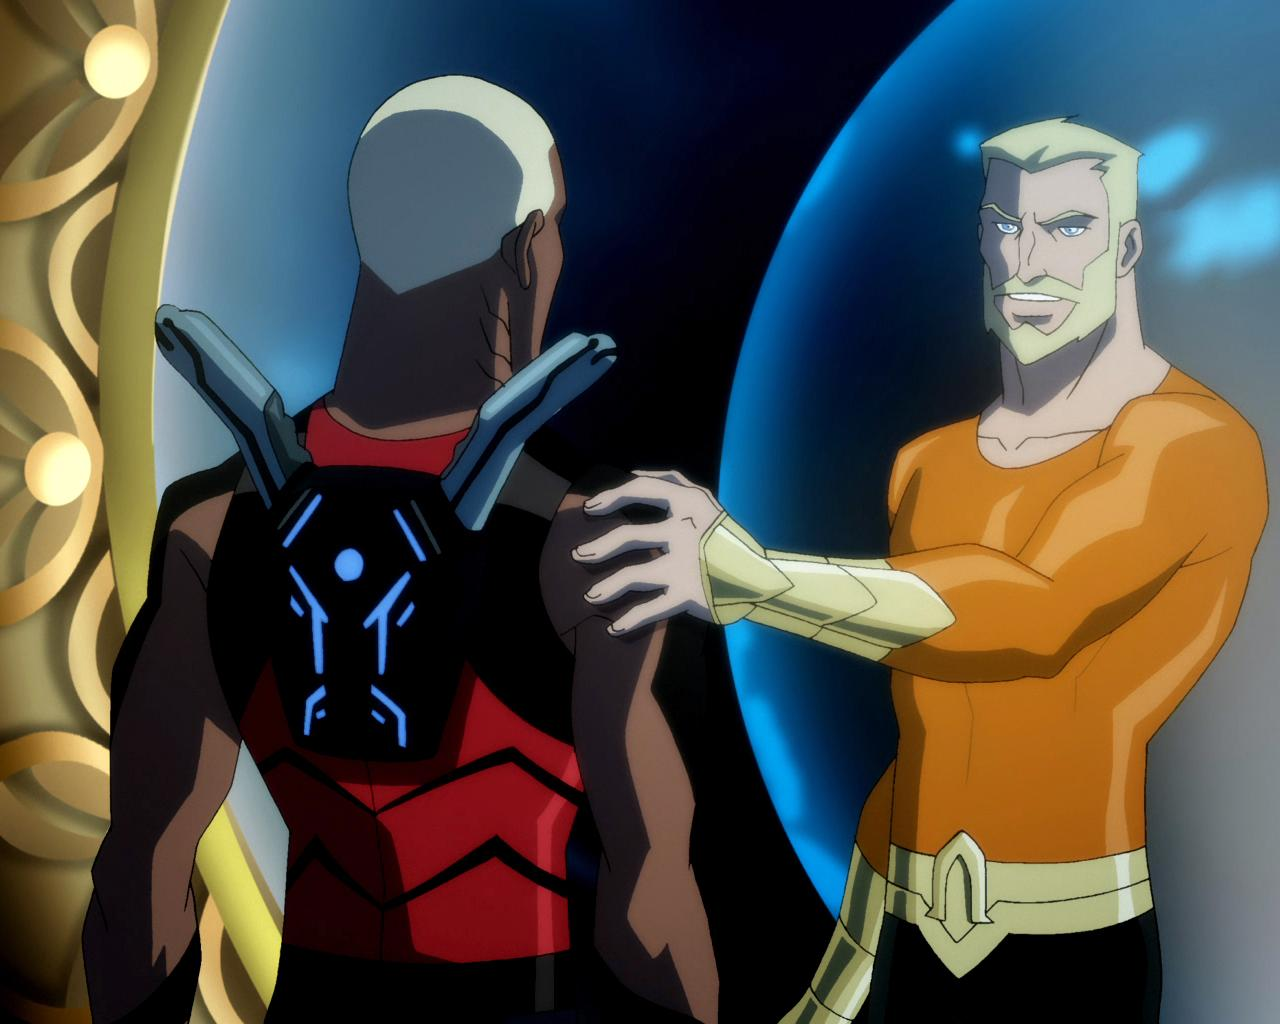 The human race must know that there are still heroes defending them - Aqualad Aqualad-and-Aquaman-kaldurahm-31692275-1280-1024